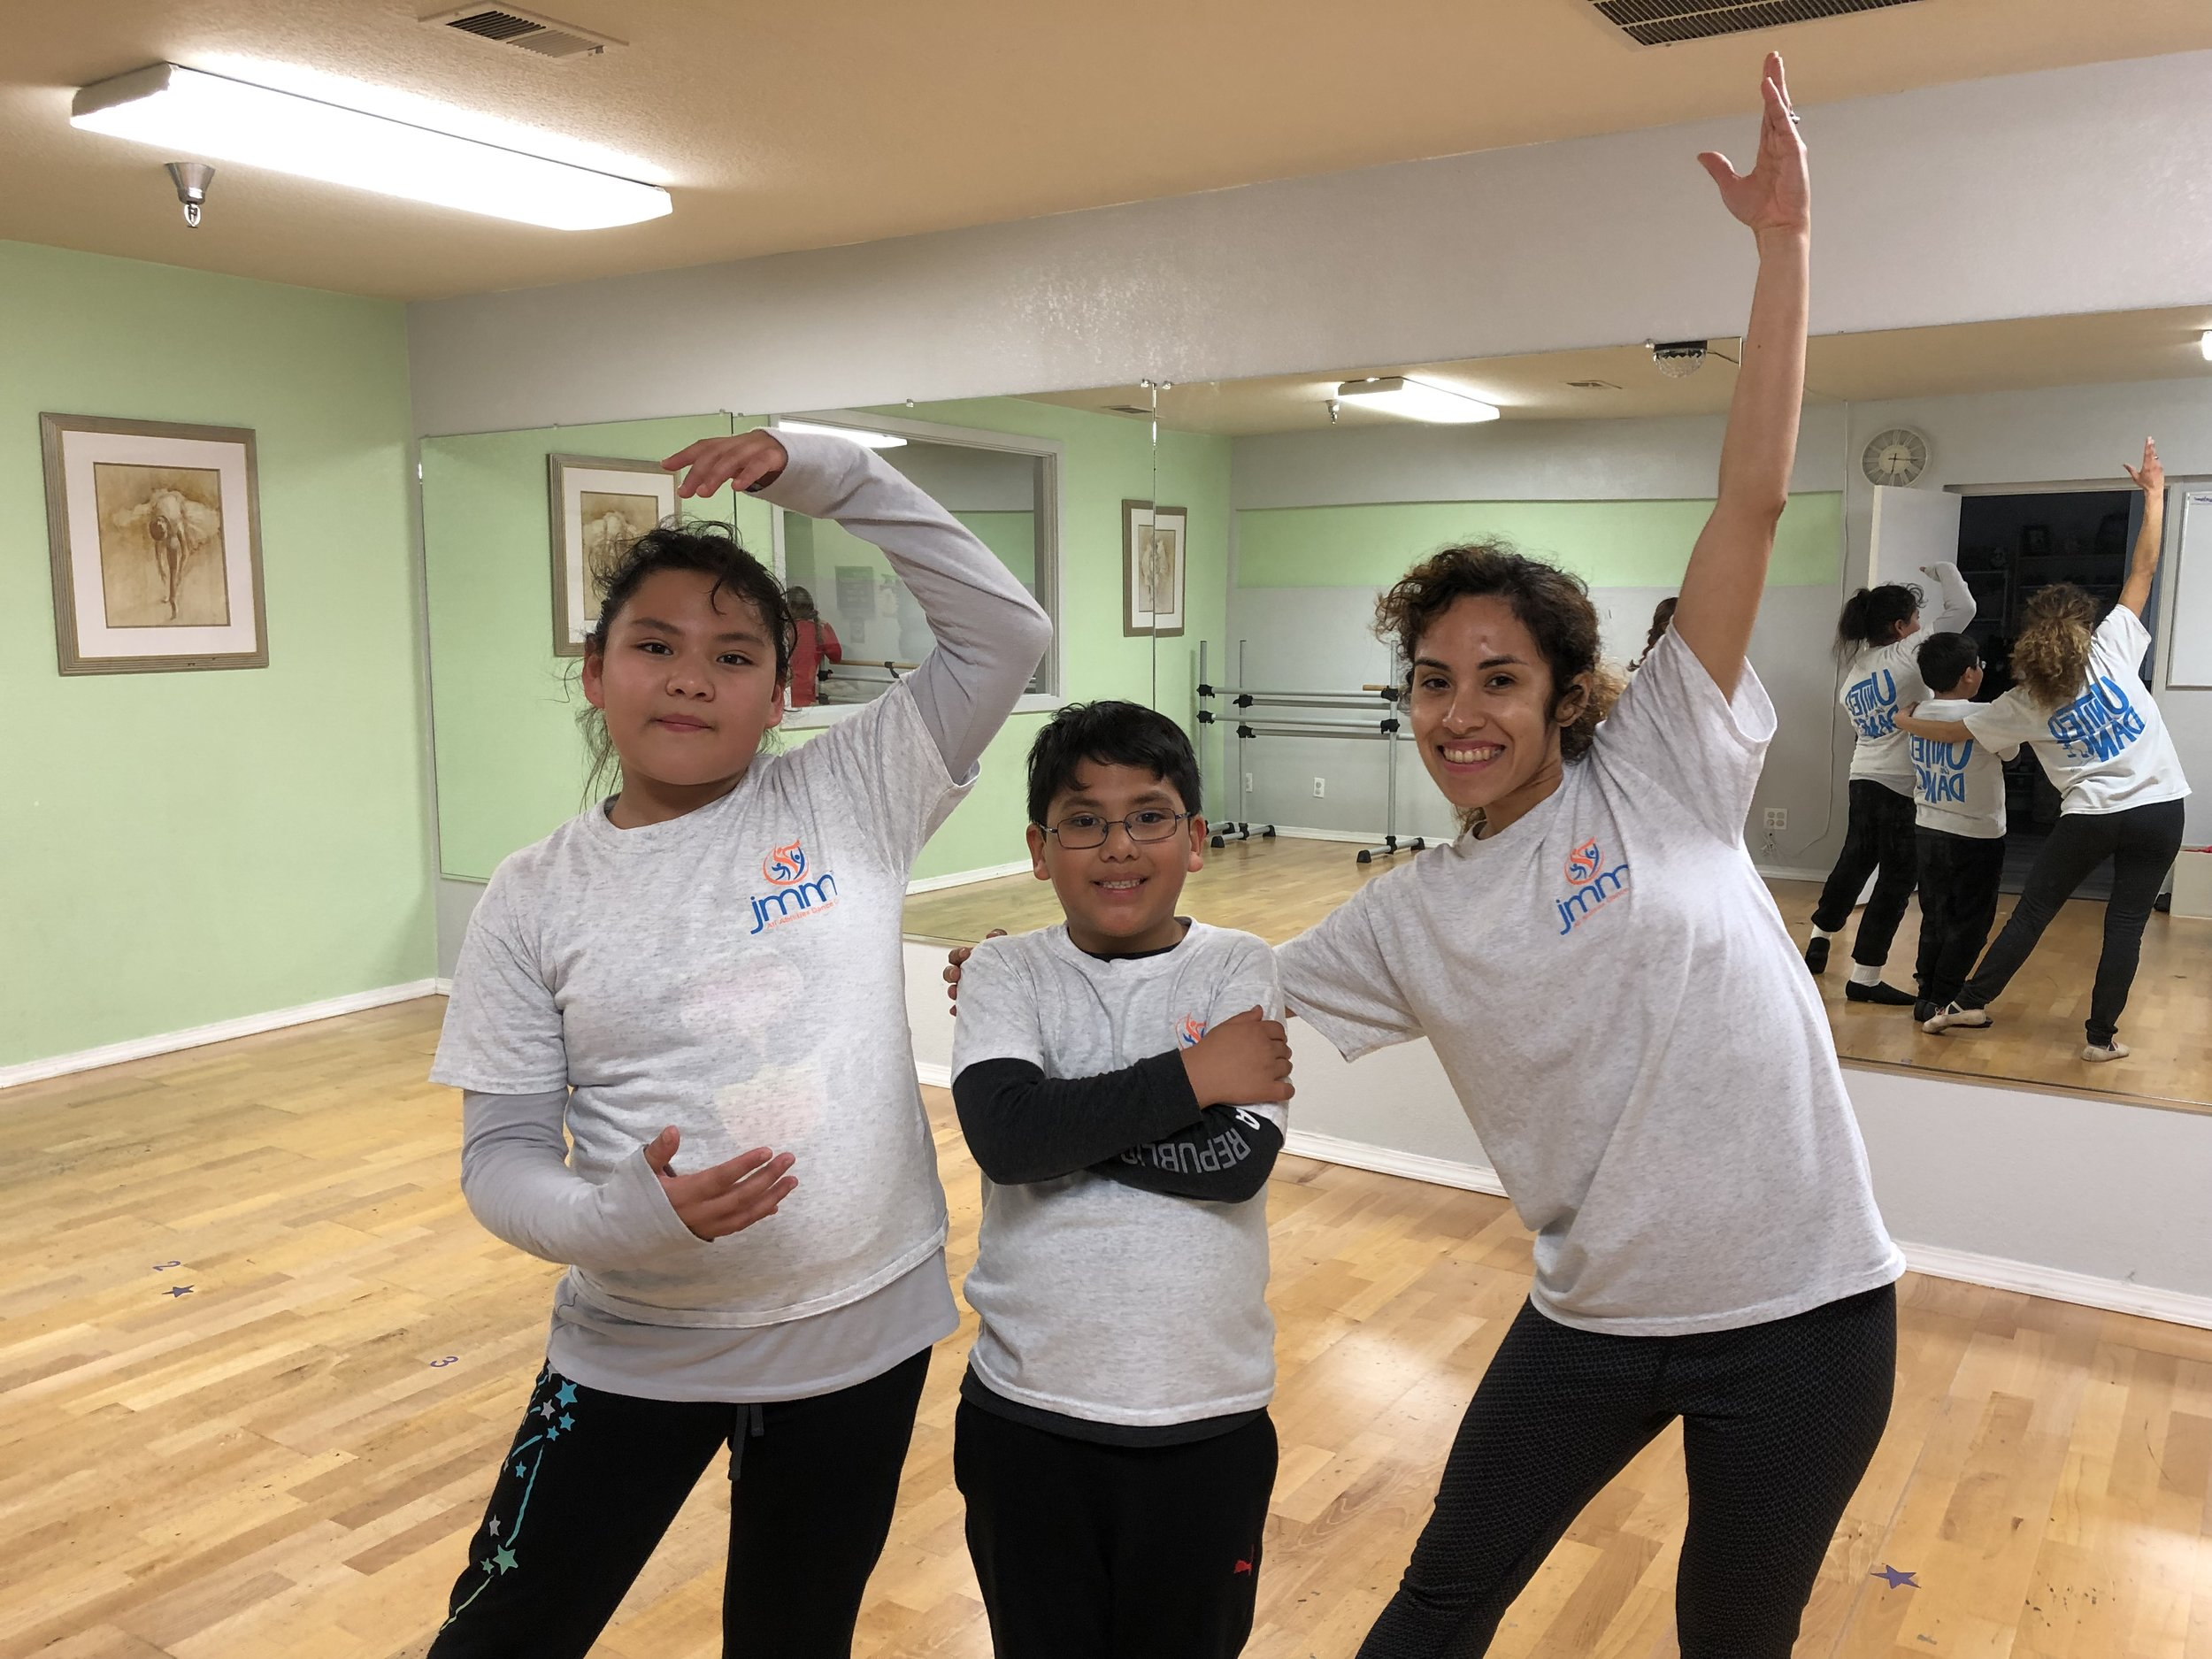 Spring 2019 we served 25 students through our bilingual dance classes…